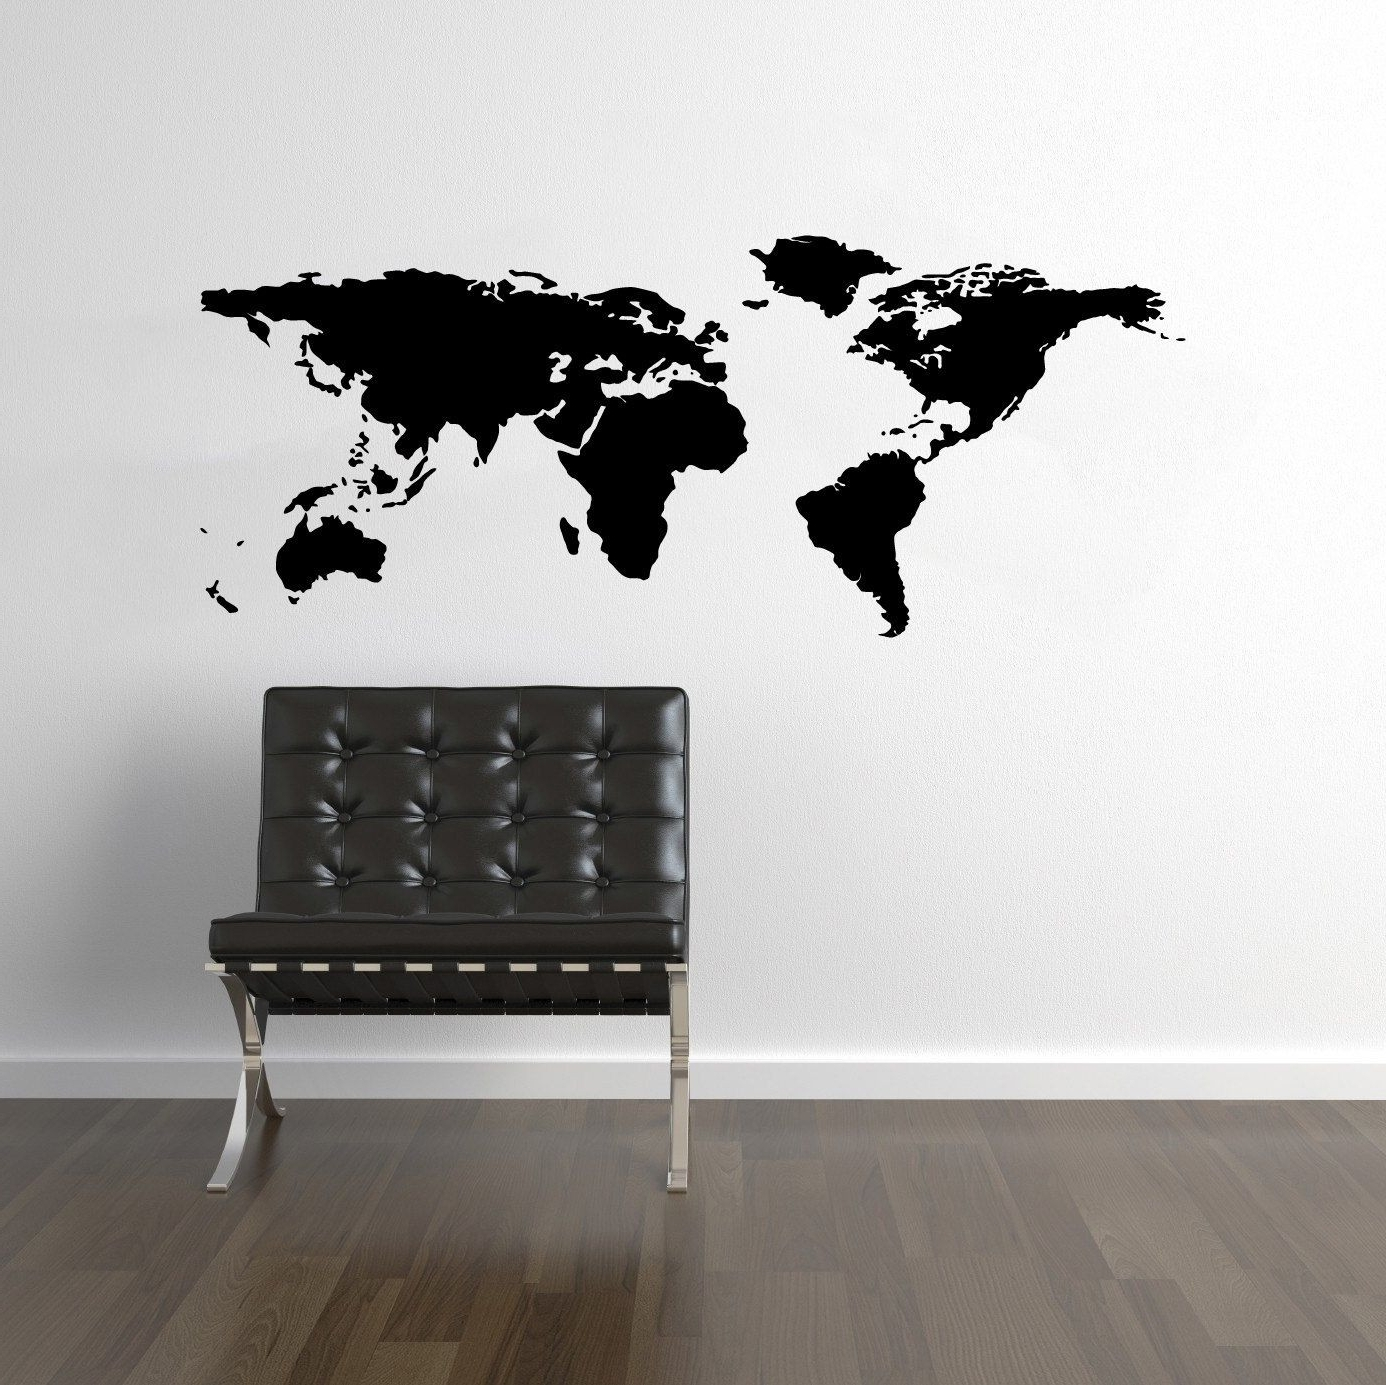 World Map Wall Decal Travel Wall Decor Map Wall Sticker Wal Design In Latest Wall Art Stickers World Map (View 14 of 15)